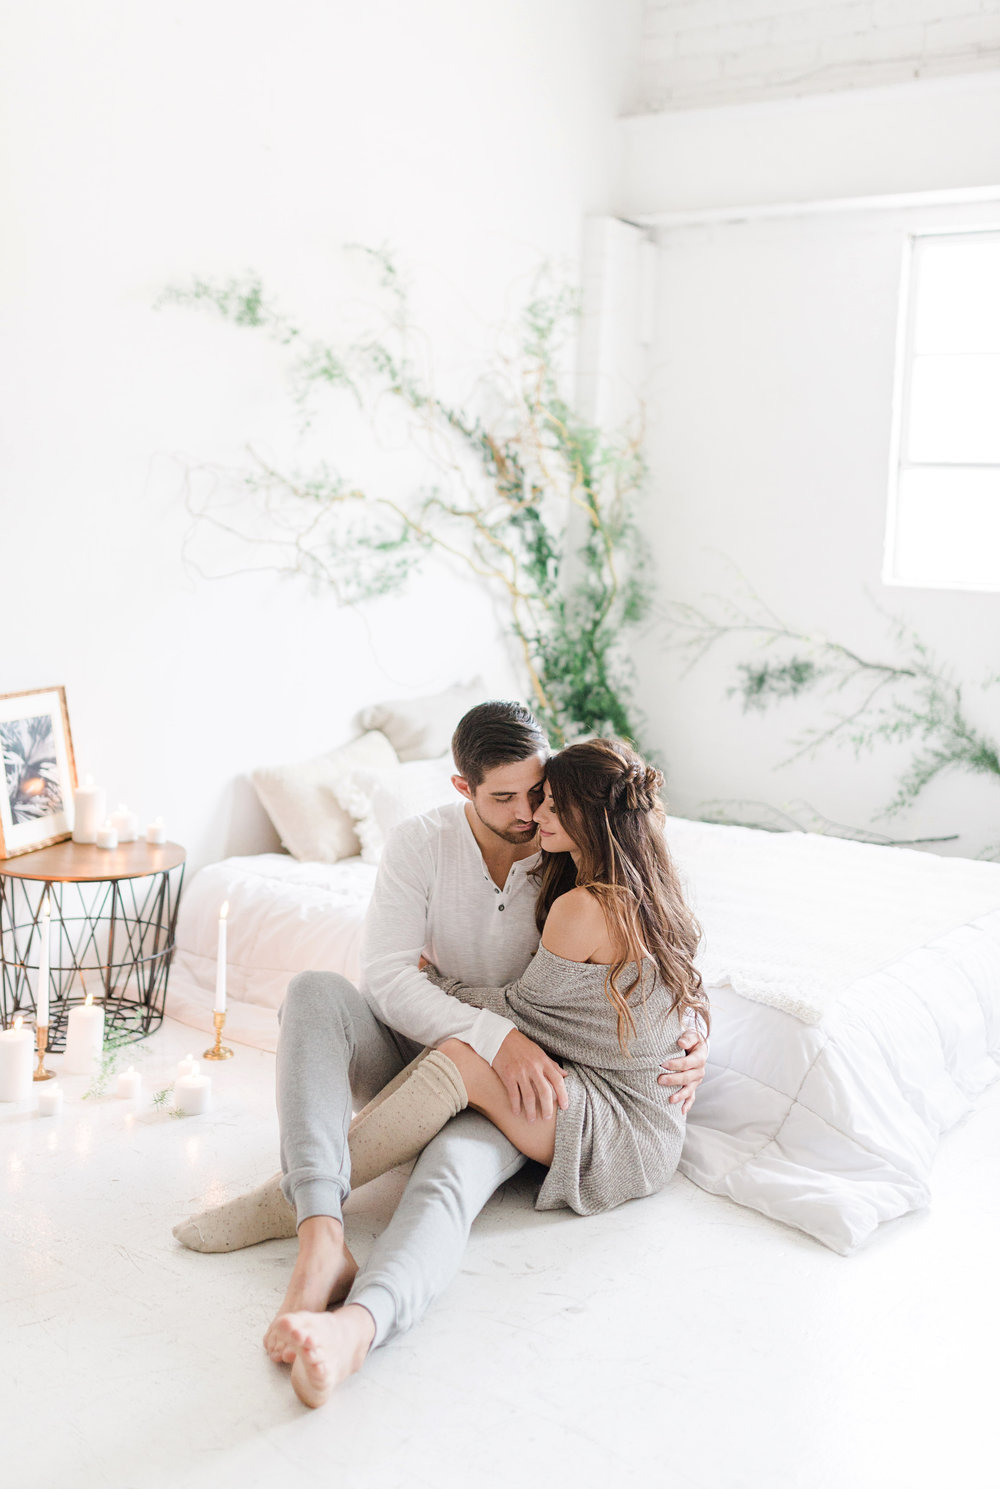 ENGAGEMENT INSPIRATION    In Home Ethereal Engagement     Blok Studio, Phoenix, AZ